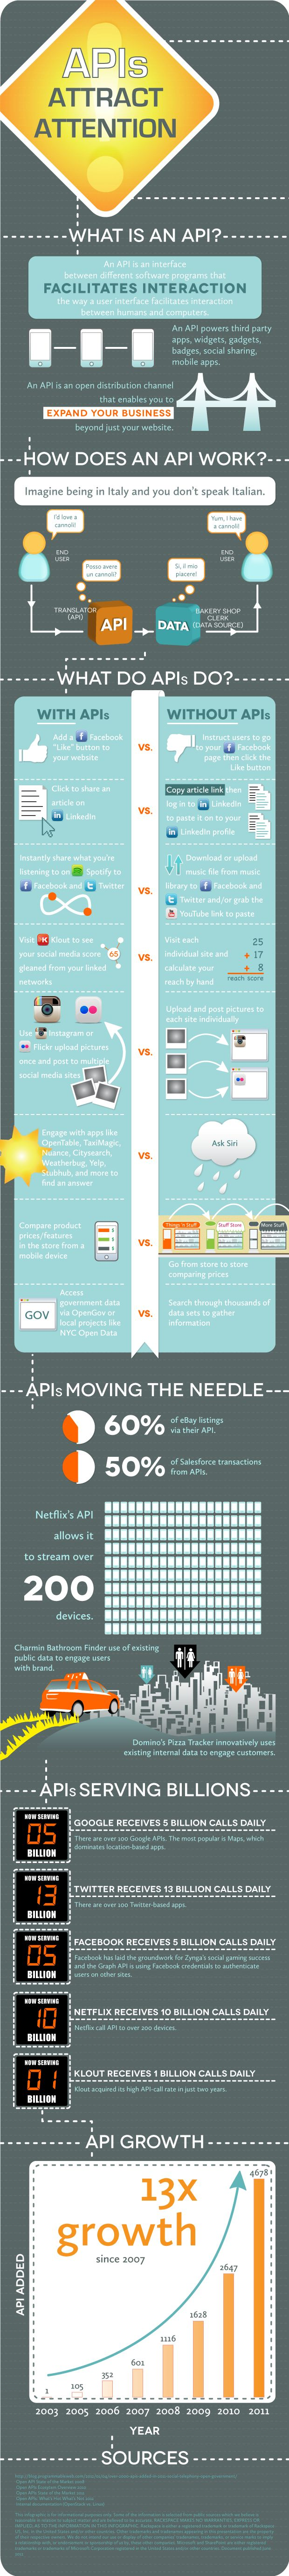 Rackspace® — API Adoption And The Open Cloud: What Is An API? [Infographic]